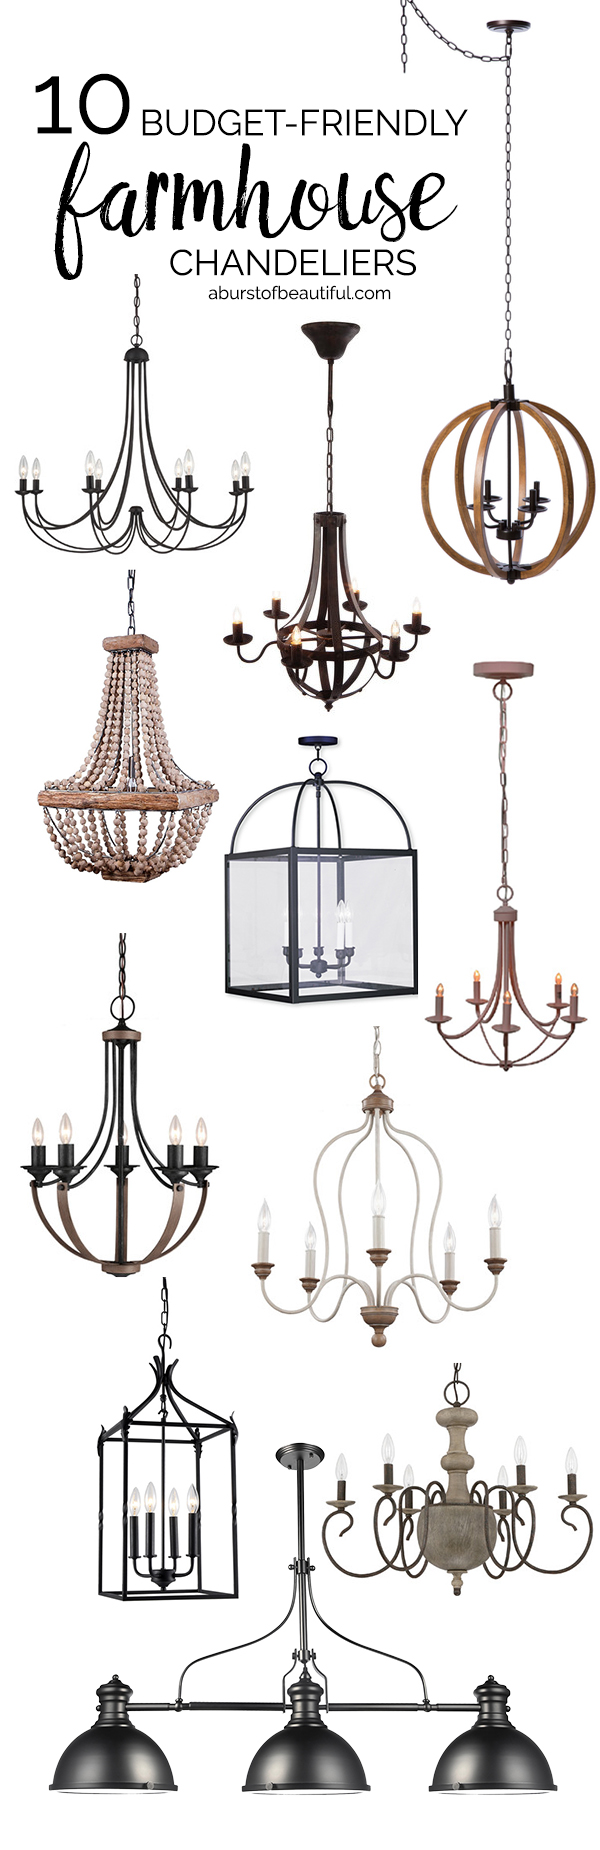 Budget-friendly farmhouse chandeliers add character and charm to any space